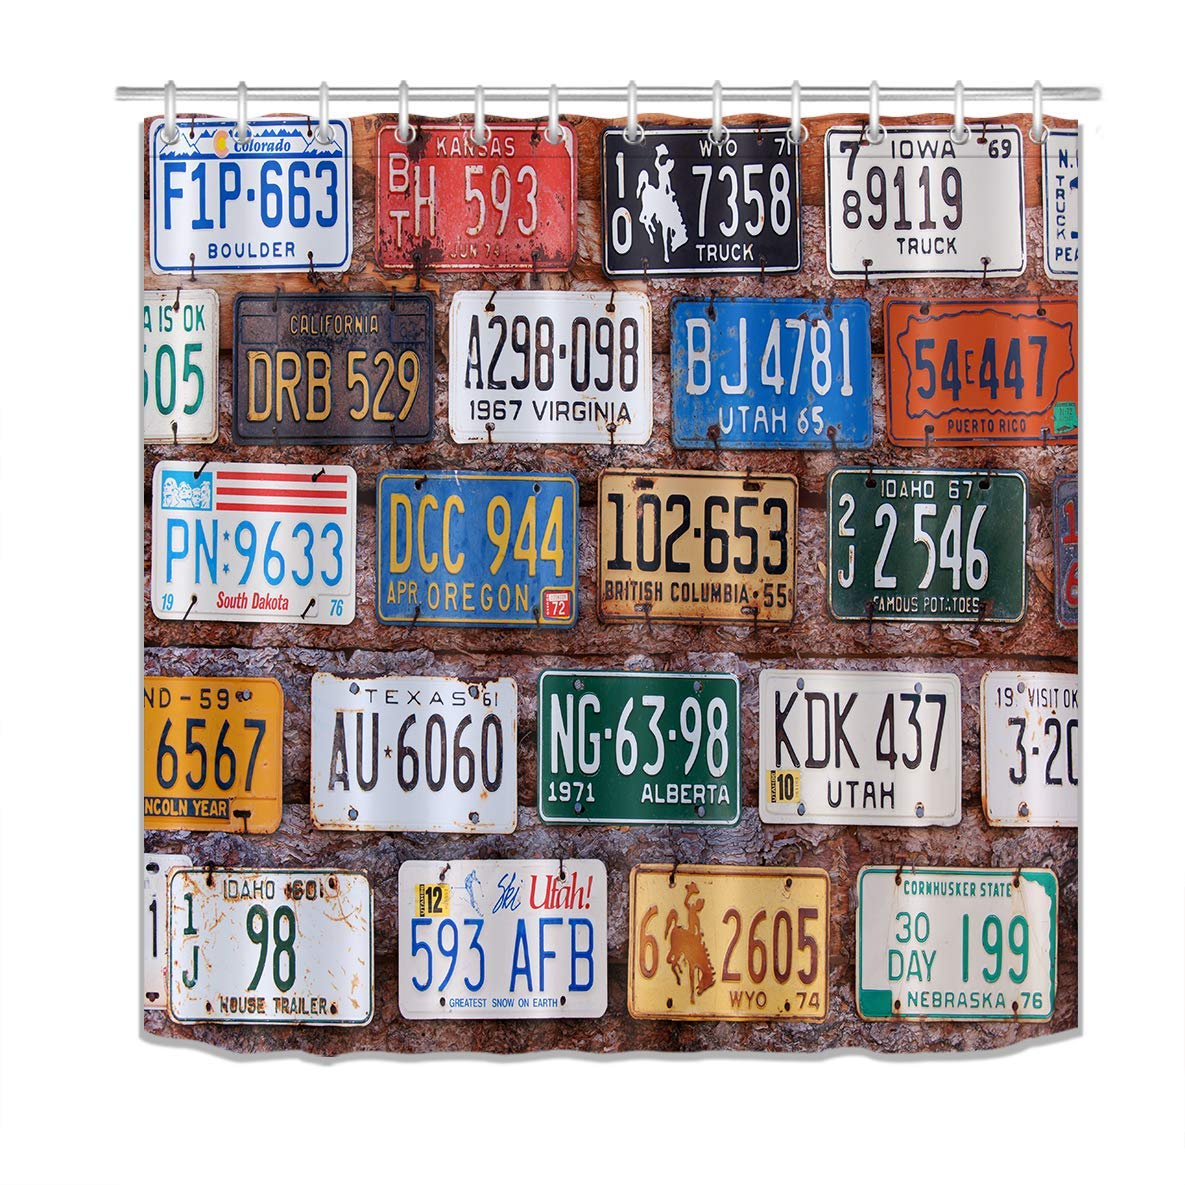 American Car License Plates Shower Curtain Rural Utah Brick Building Wall Bathroom Decor Polyester Fabric